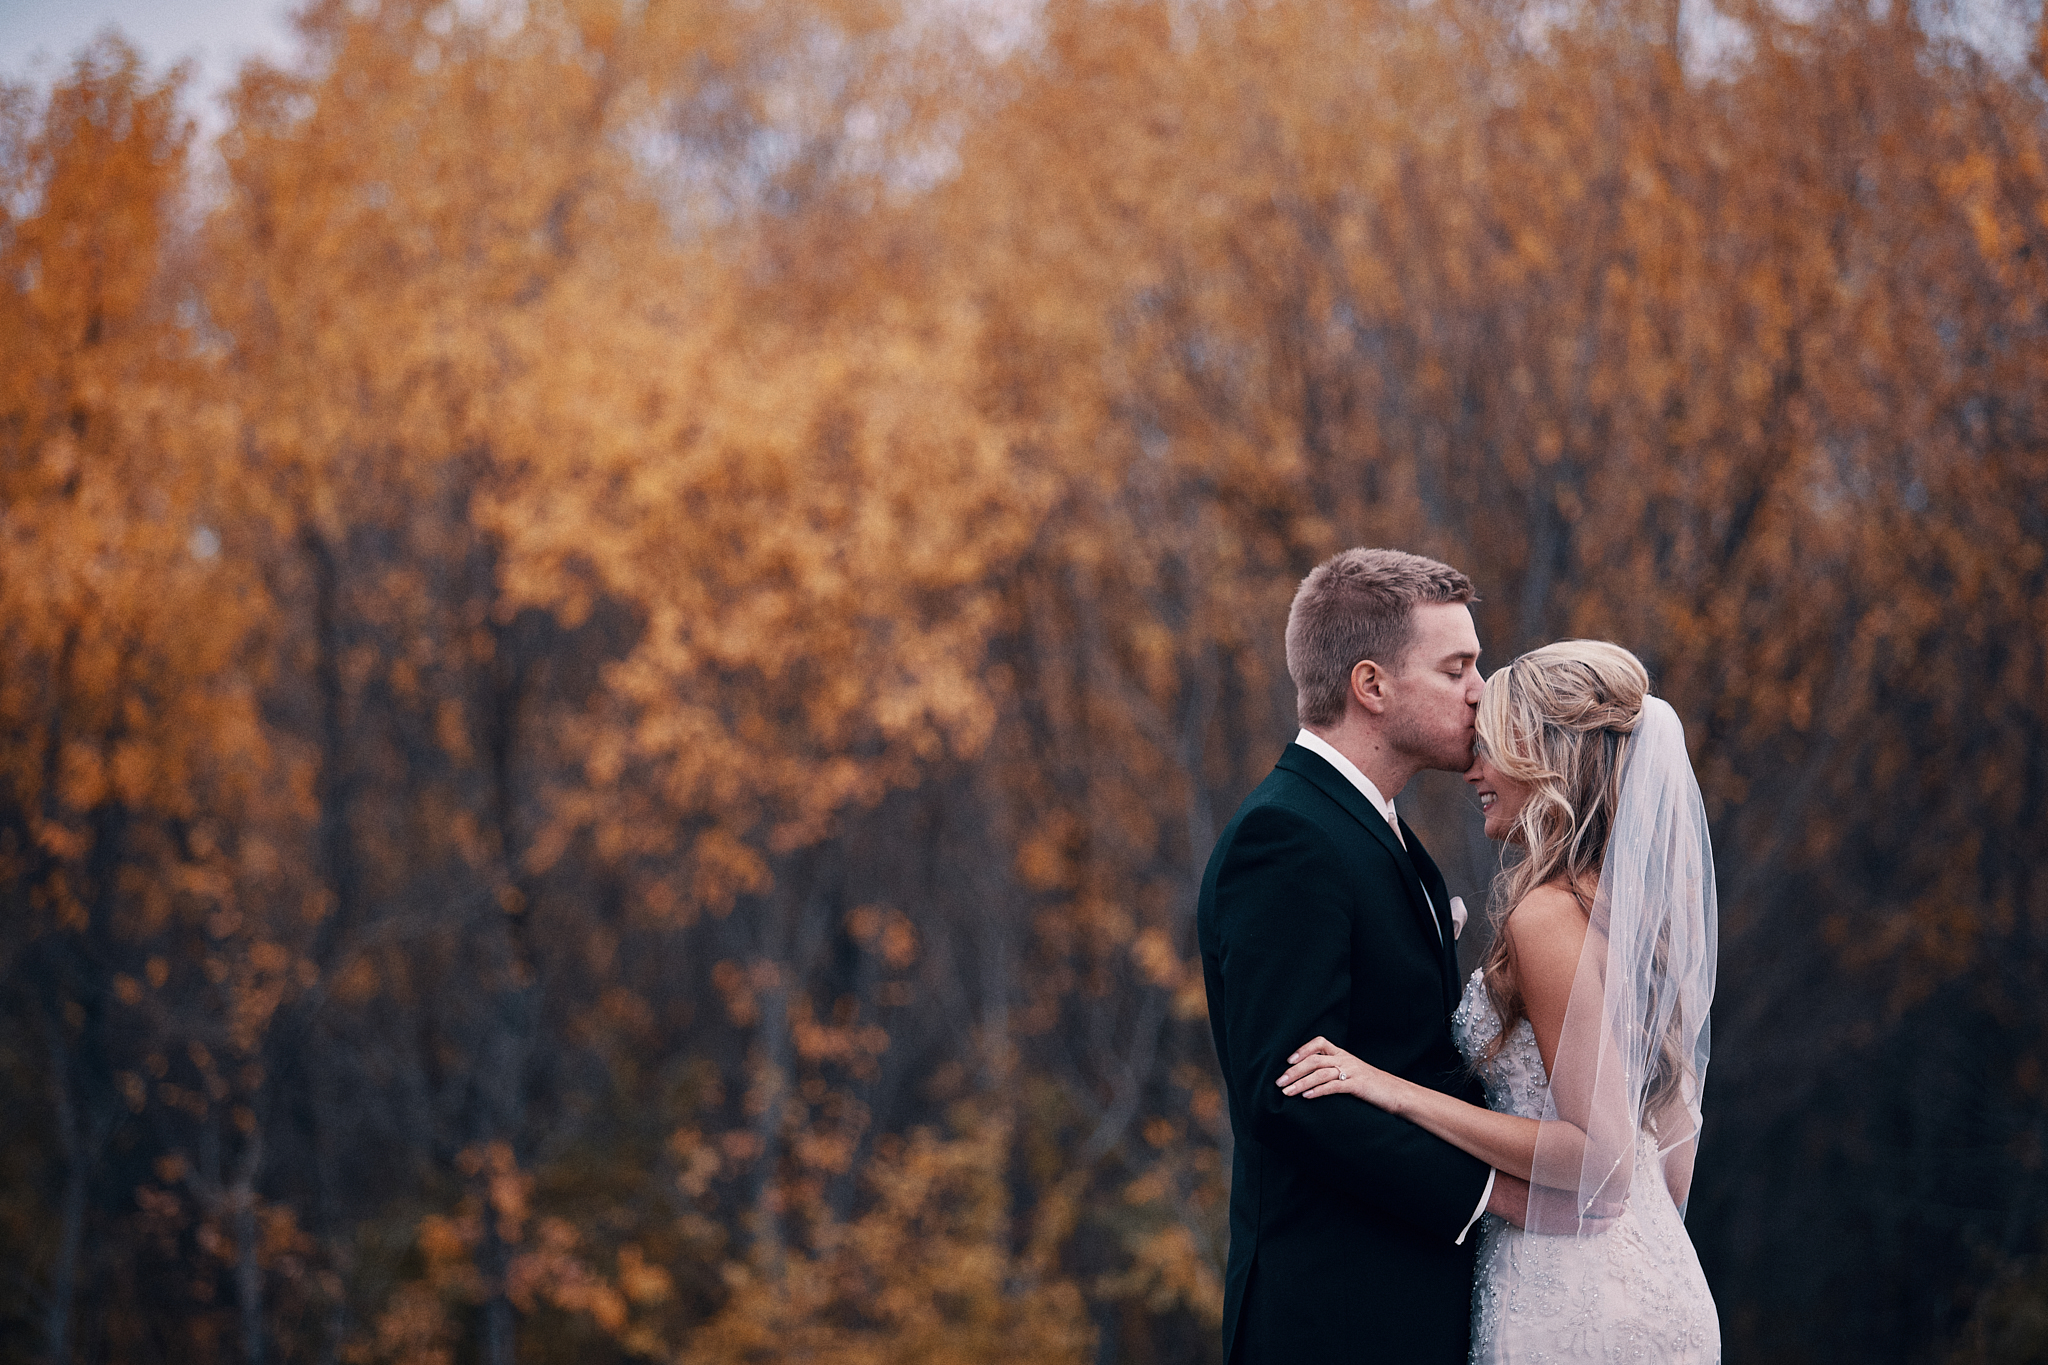 Best_Minneapolis_Wedding_And_Engaement_Photographer_In_Minnesota_High_End_Brand_Something_Candid_004.JPG